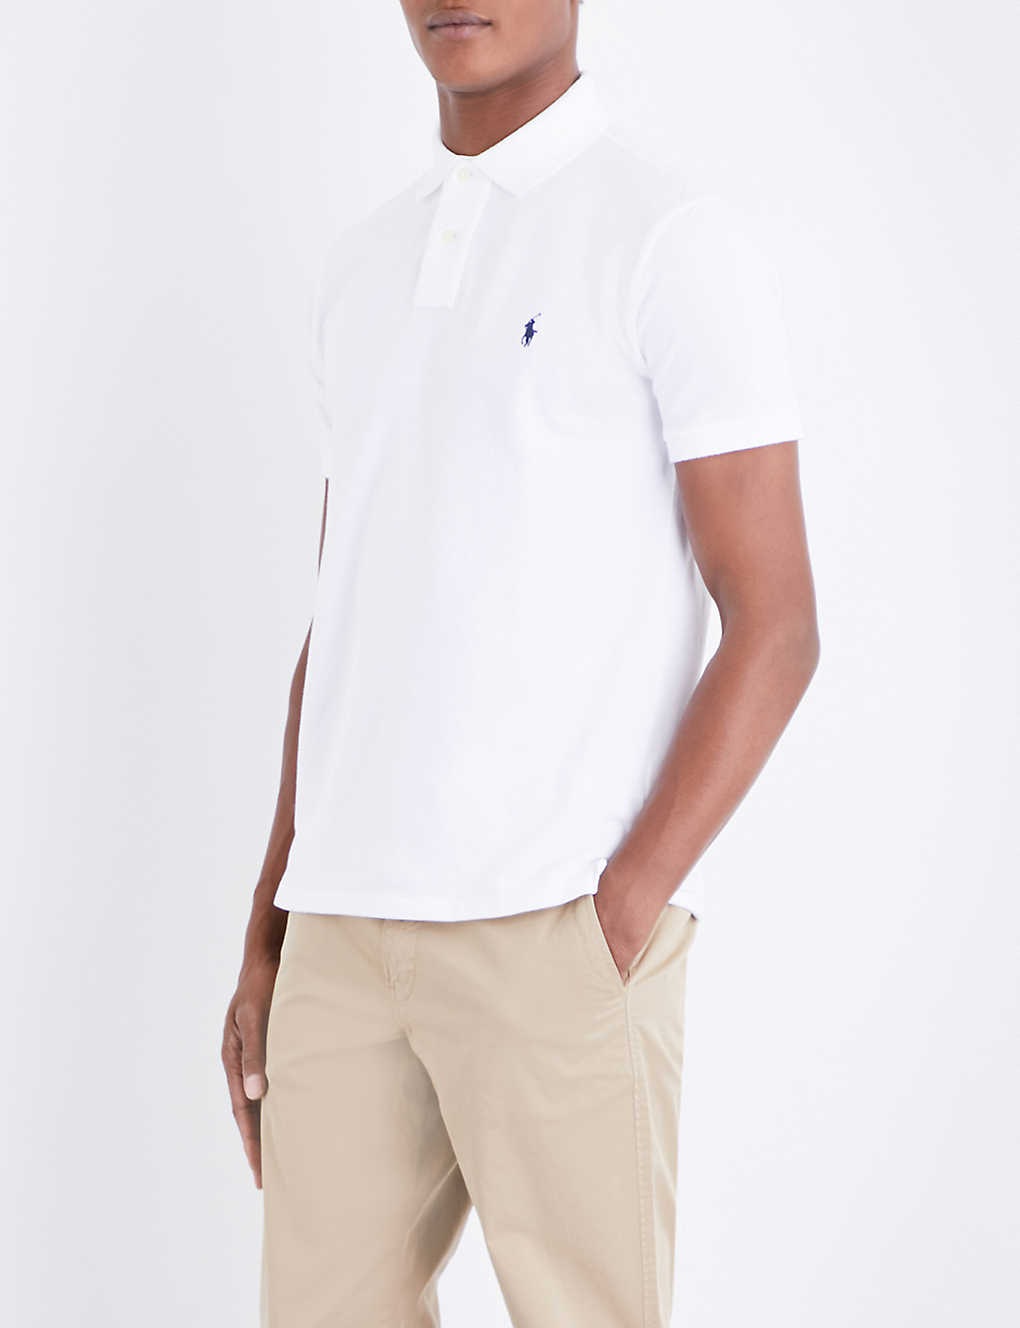 4c79b8a49fe1 POLO RALPH LAUREN - Custom slim-fit cotton Polo Shirt | Selfridges.com